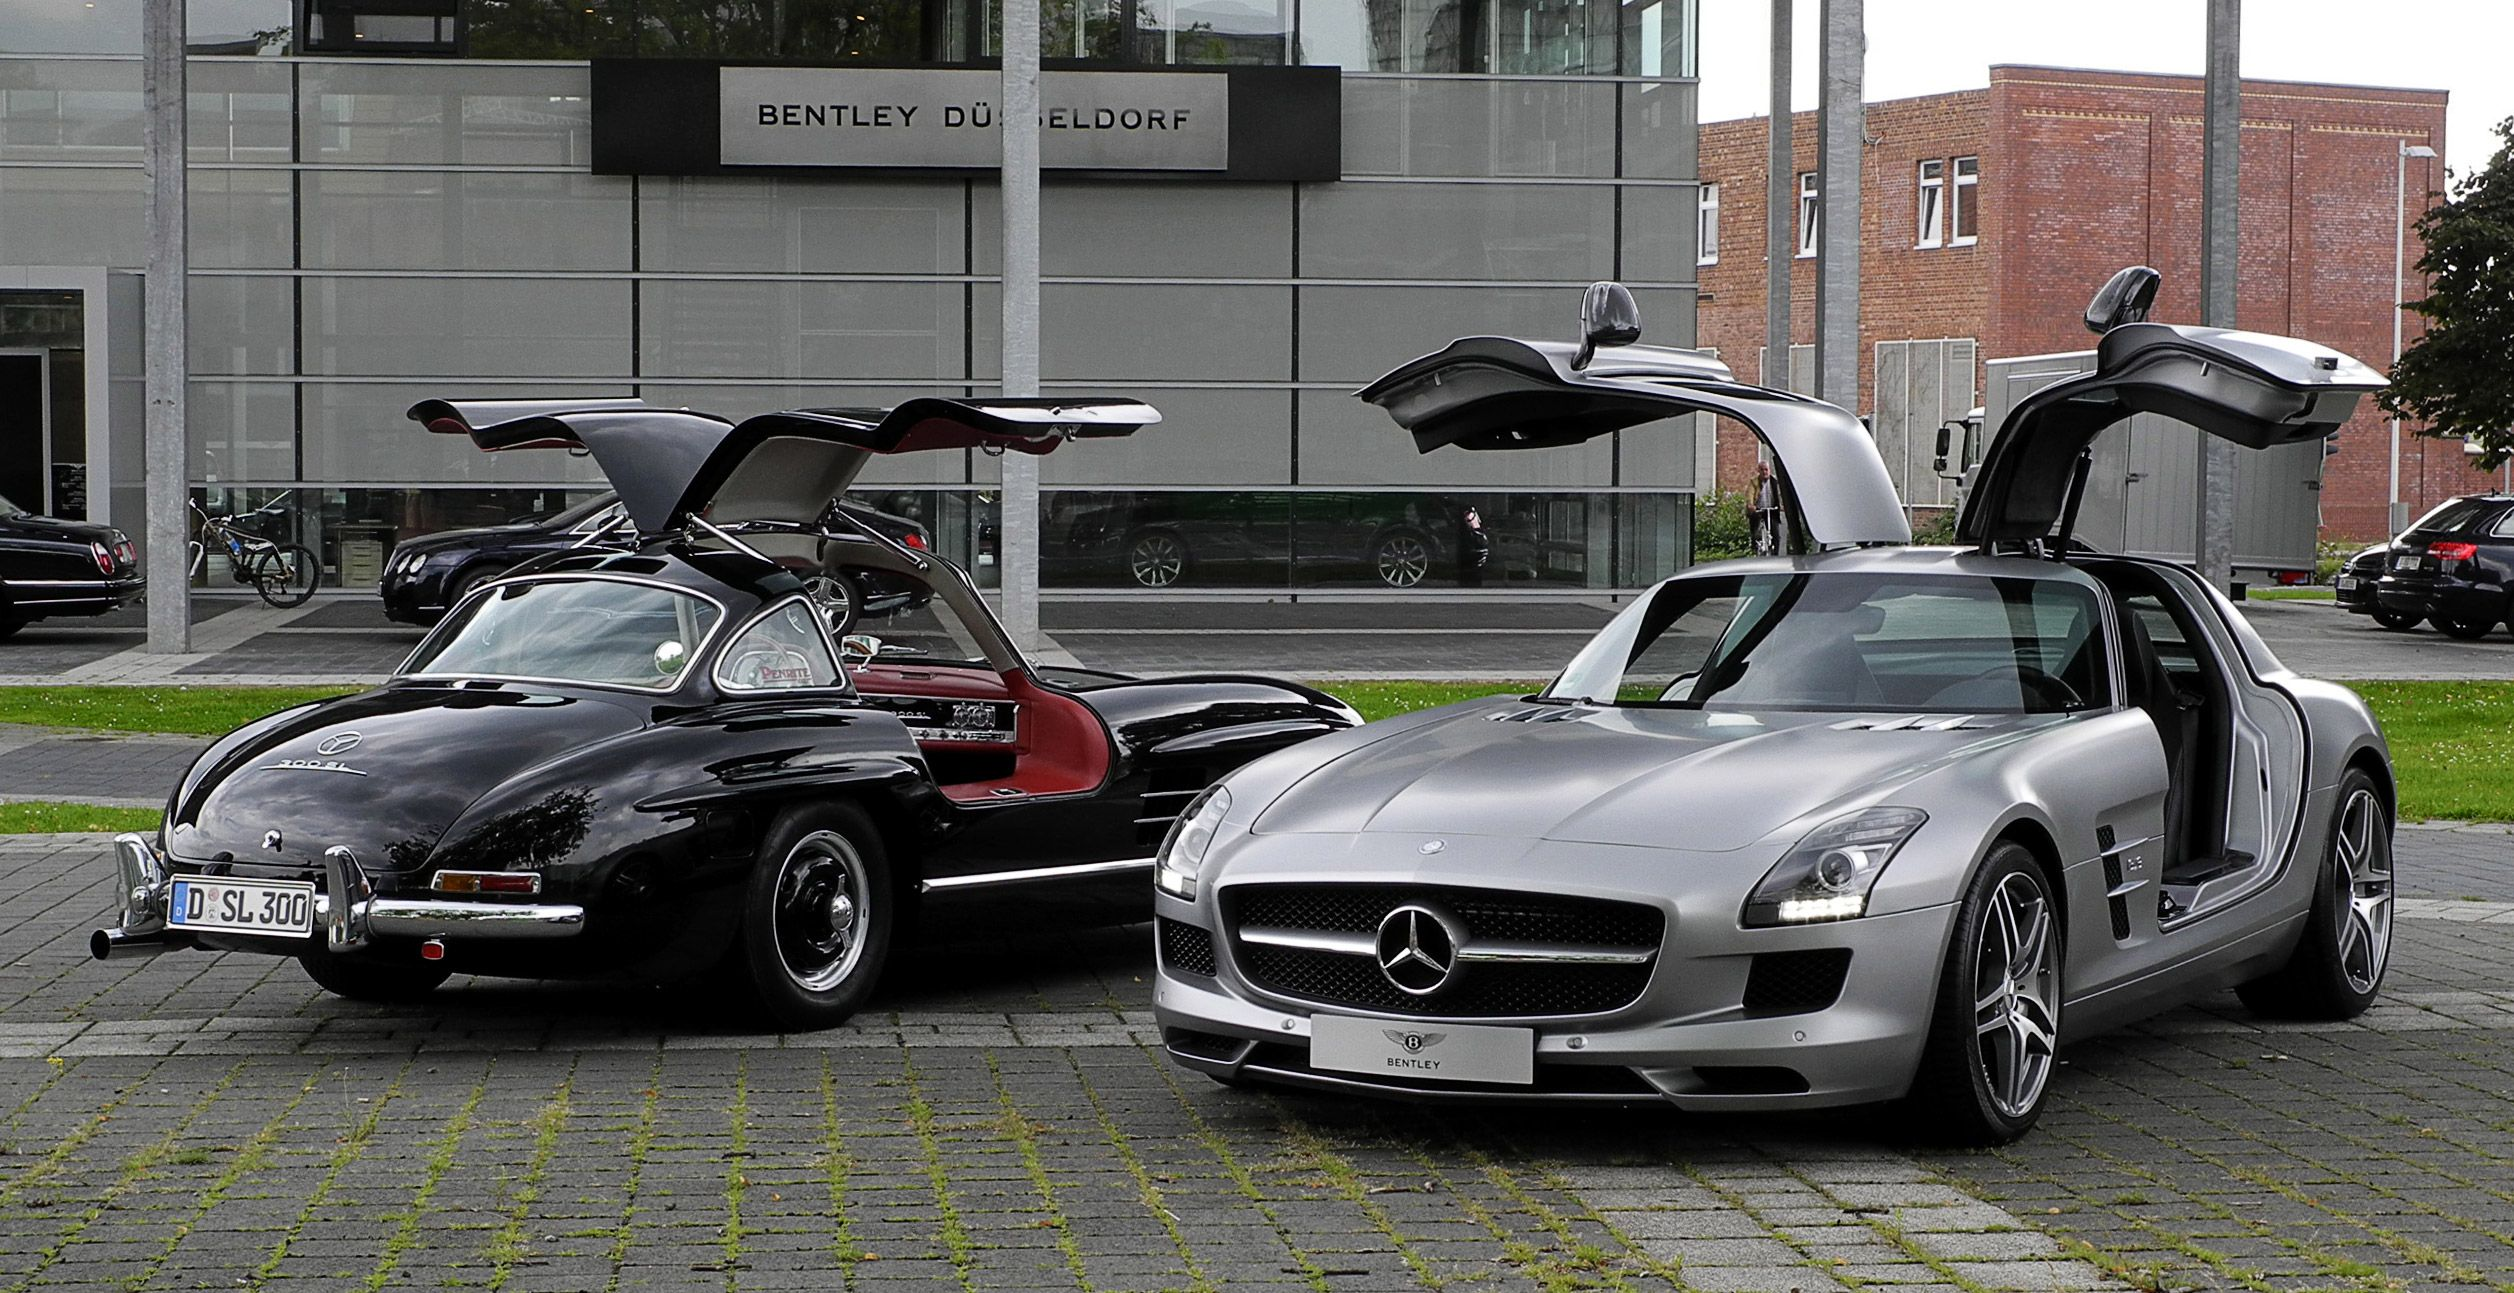 25 Mercedes Benz Sls Photos That Will Make You Want To Empty Your Bank Account Mercedes Benz Sls Mercedes Benz 300 Mercedes Benz